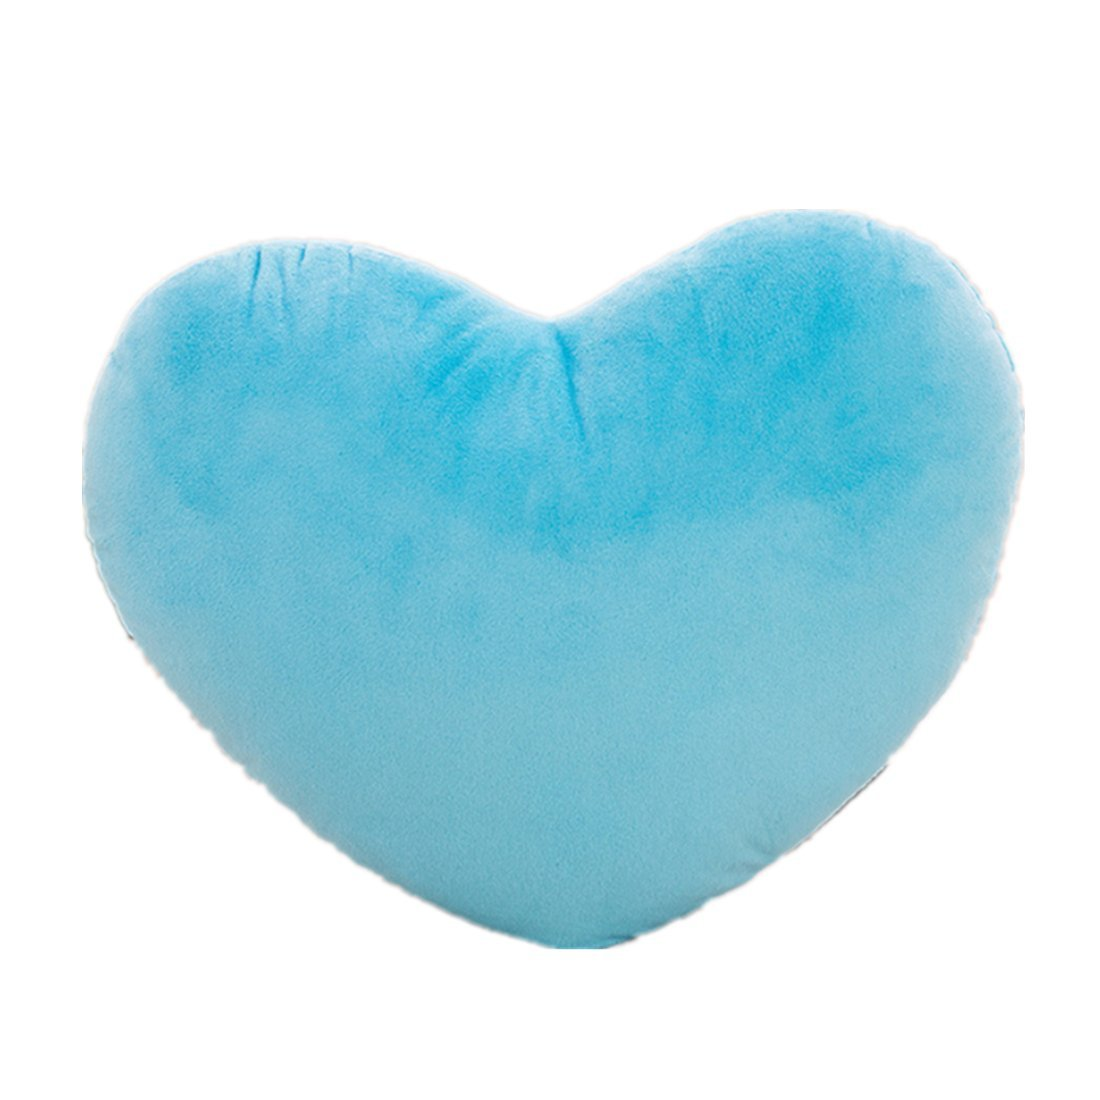 Valentine's Day gift, Winzik Plush love heart Throw pillows,for kids car home bedroom sofa decoration,15L11.8W (BLUE) by Winzik (Image #1)